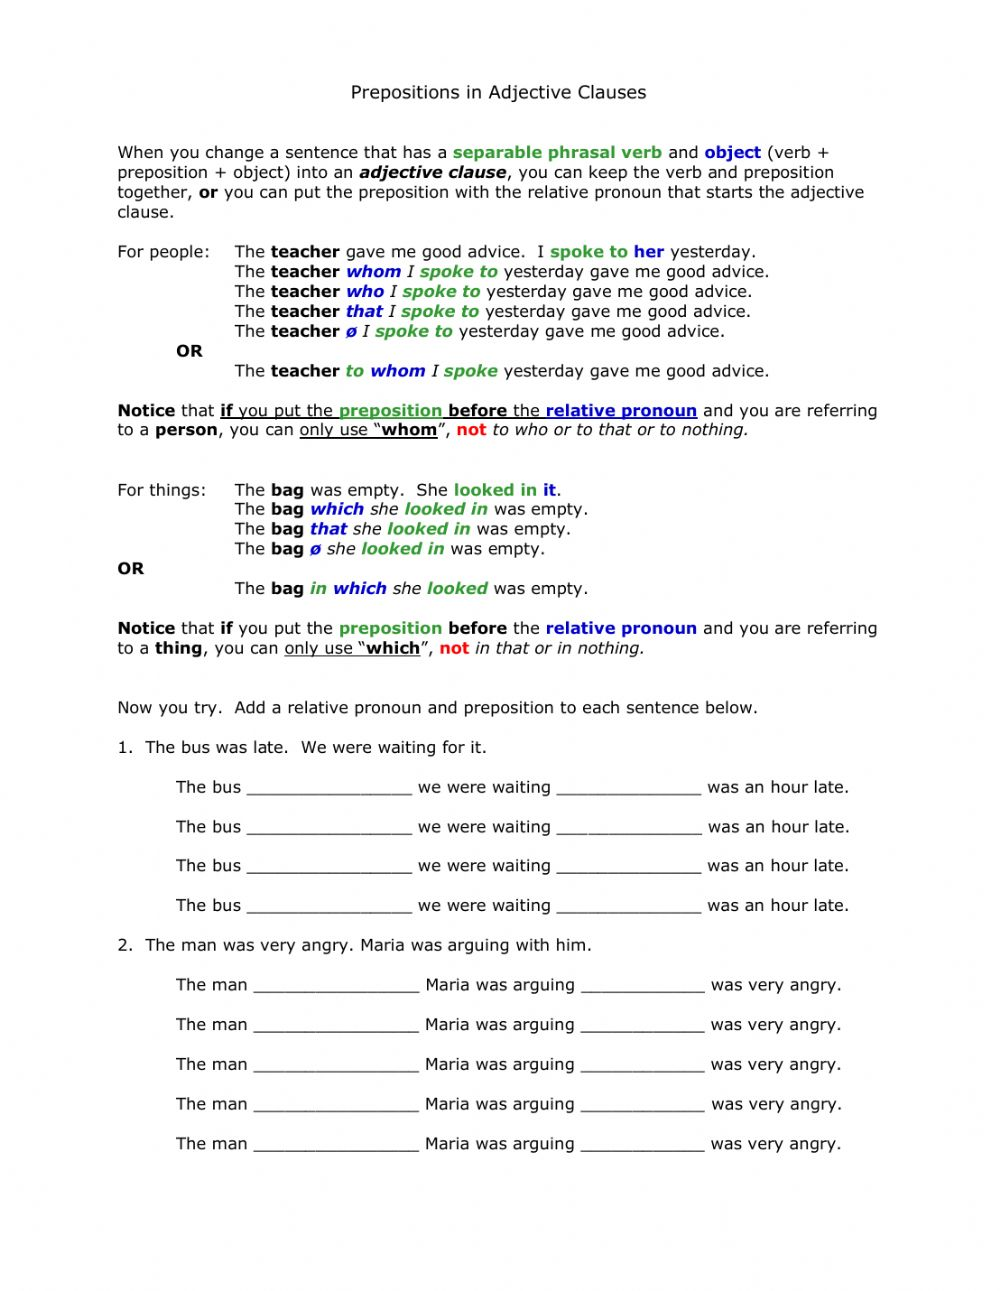 medium resolution of AG2 prepositions in adjectives clauses worksheet